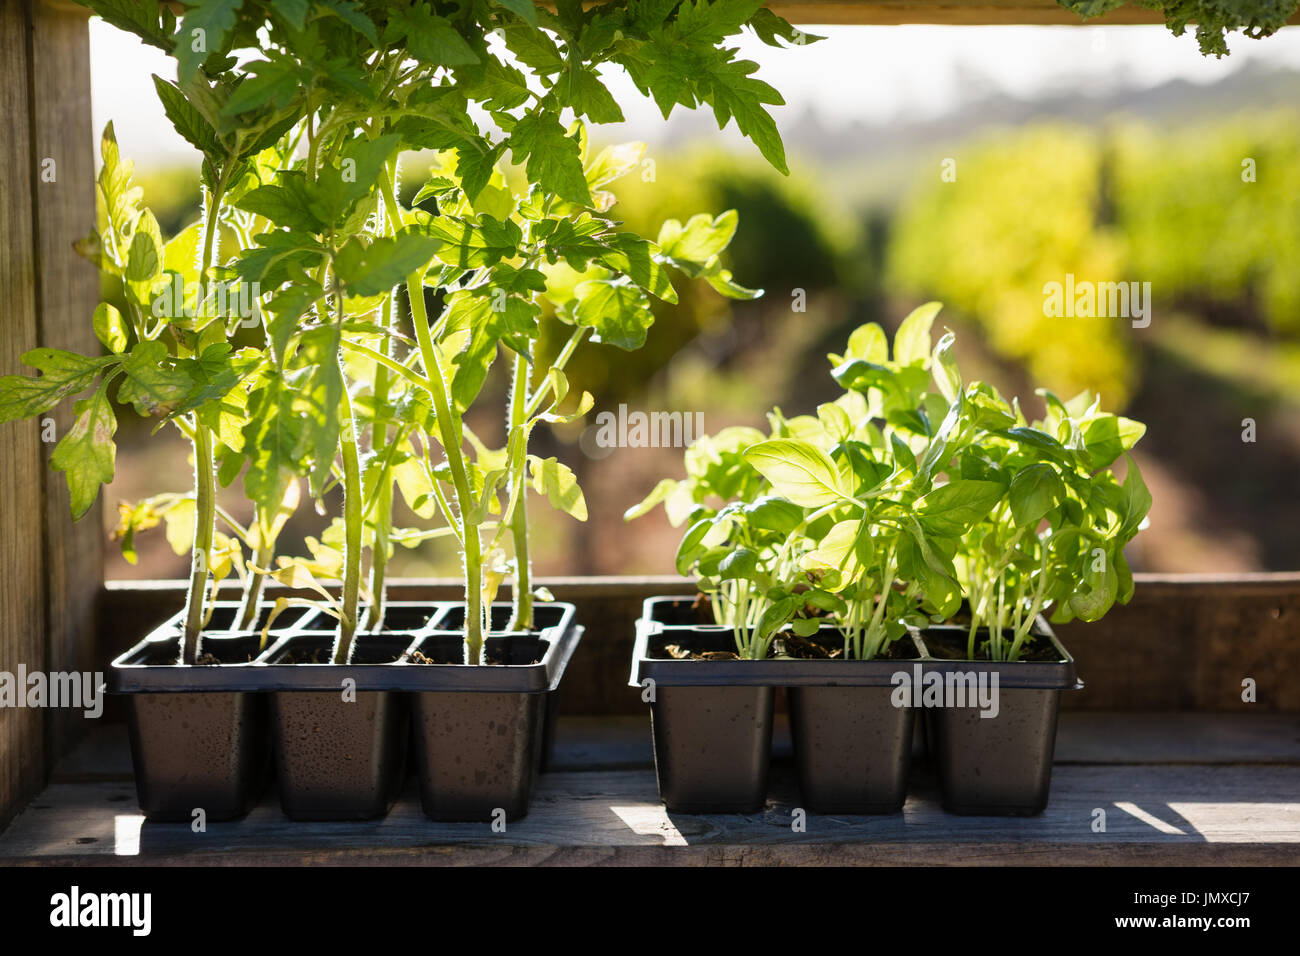 Various pot plants arranged on table in vineyard - Stock Image